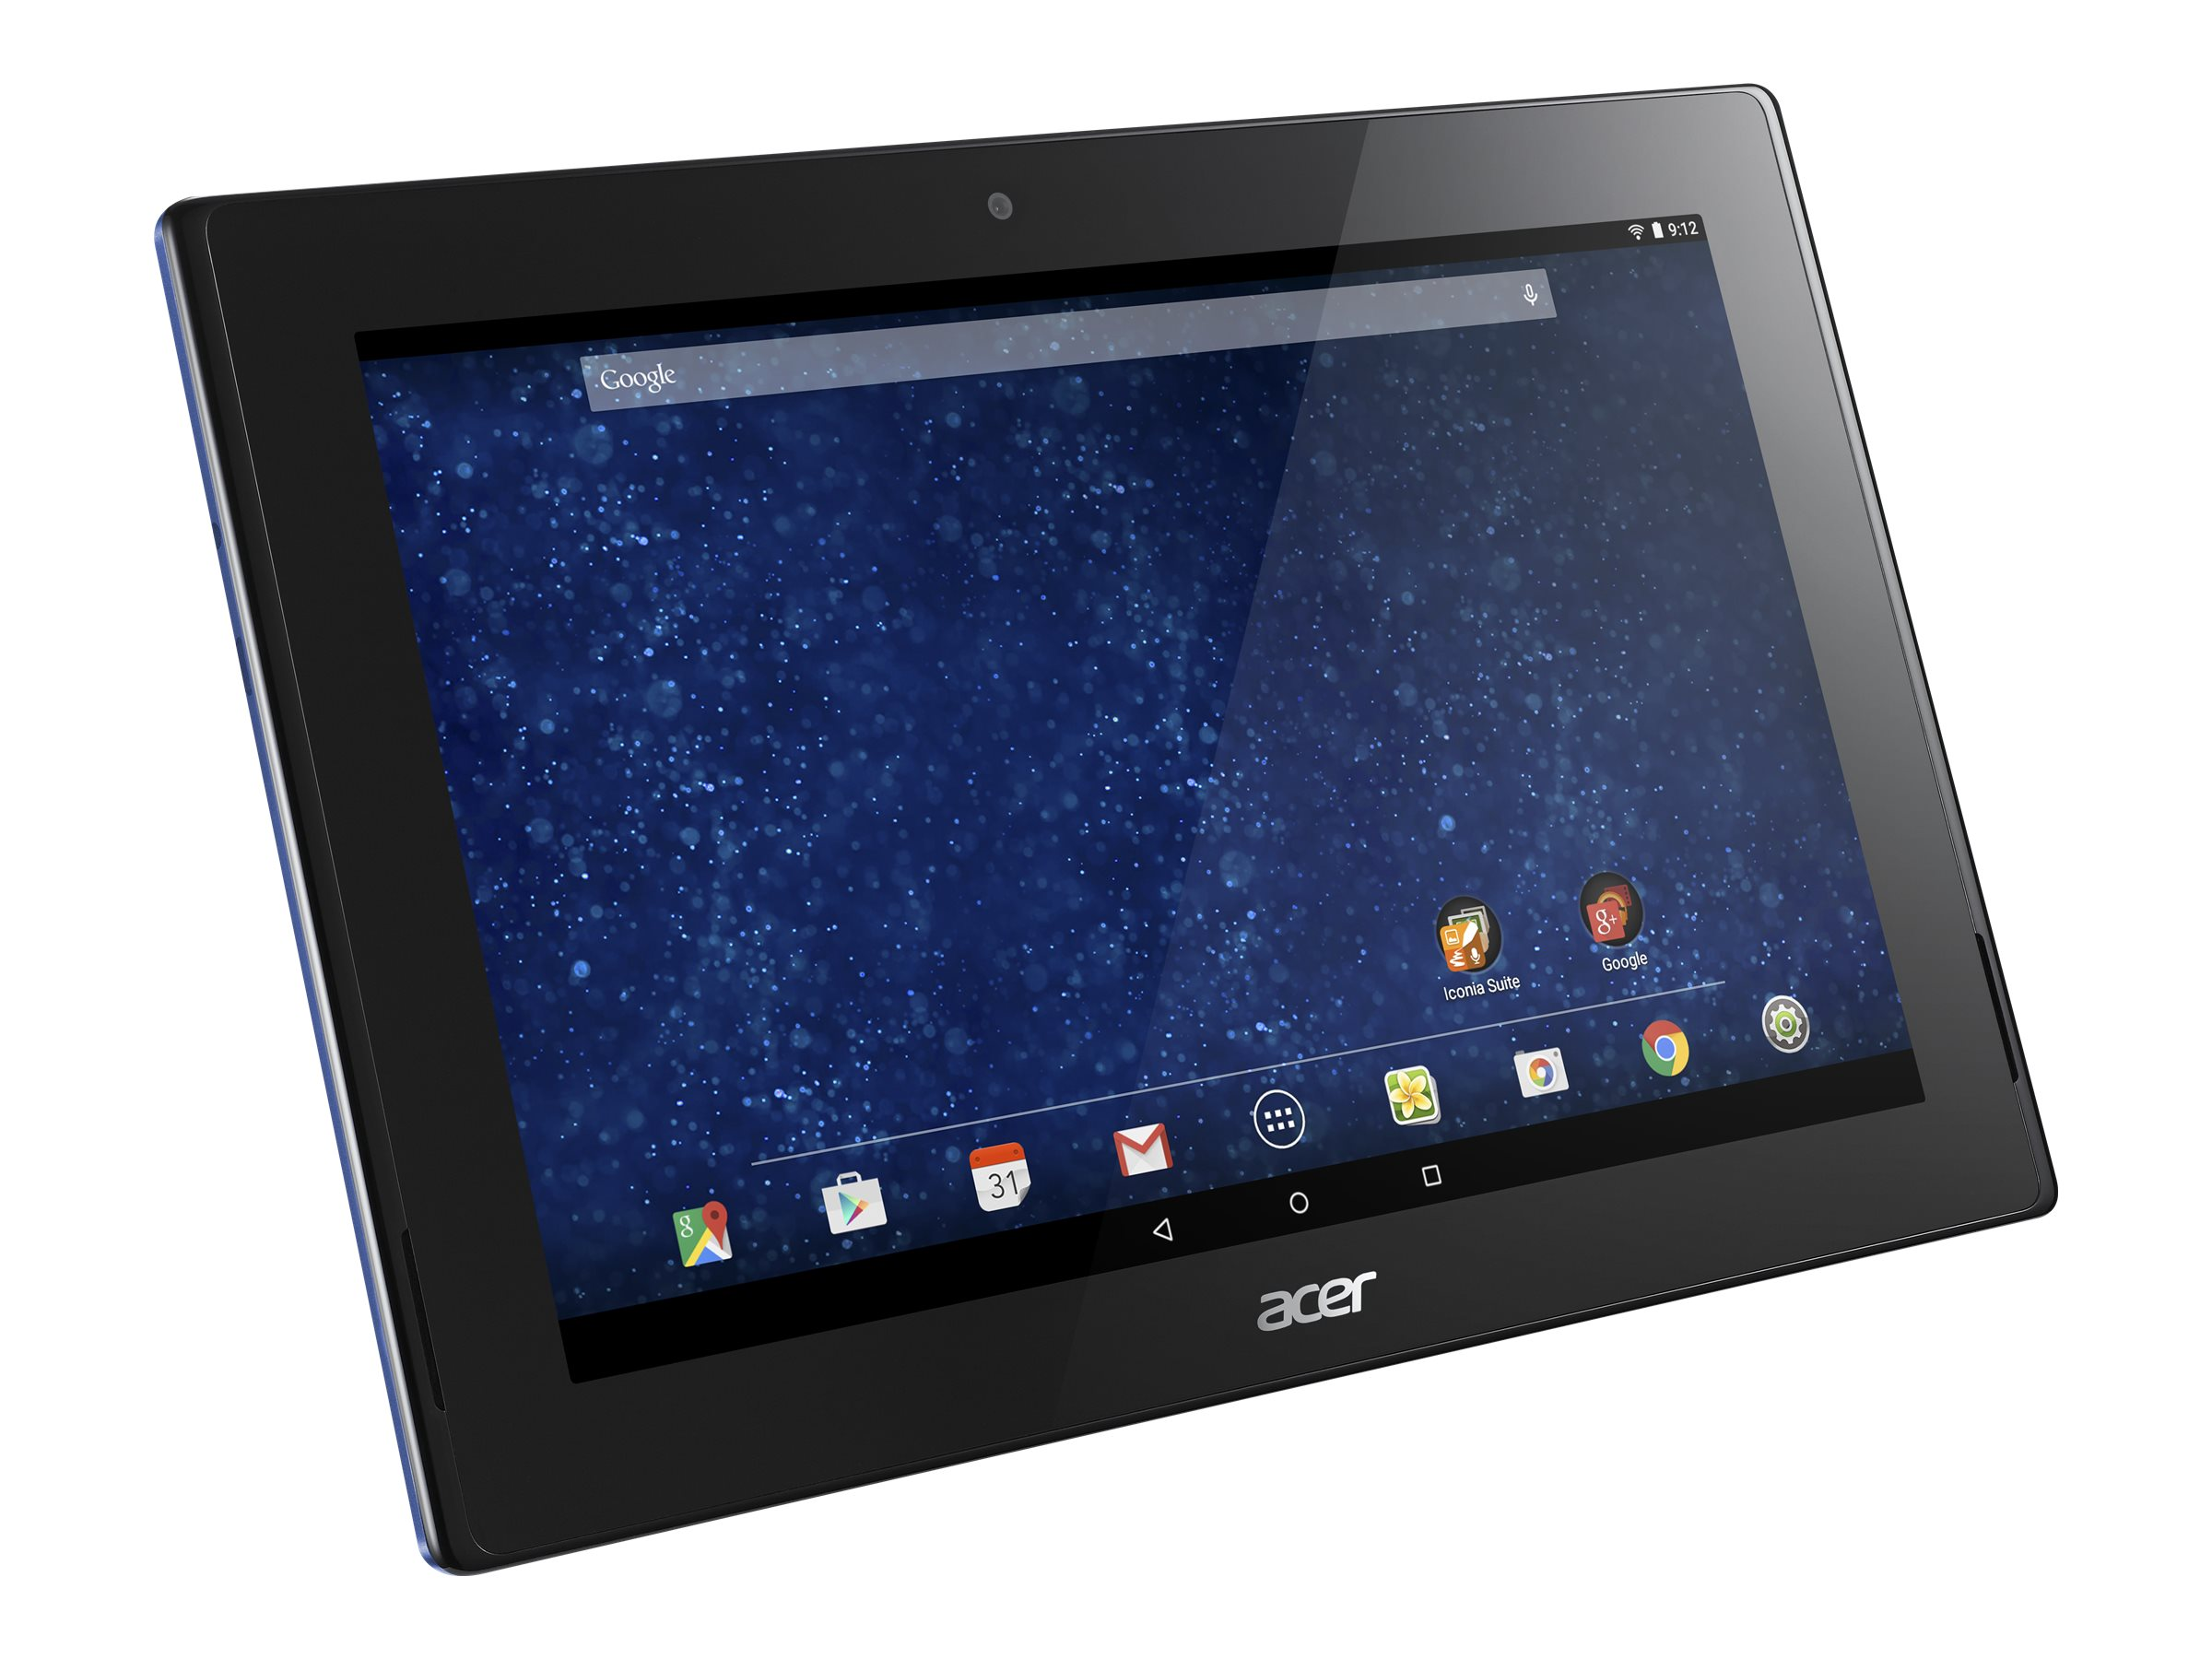 Acer Iconia A3-A30-18P1 1.33GHz processor Android 5.0 (Lollipop), NT.L9YAA.001